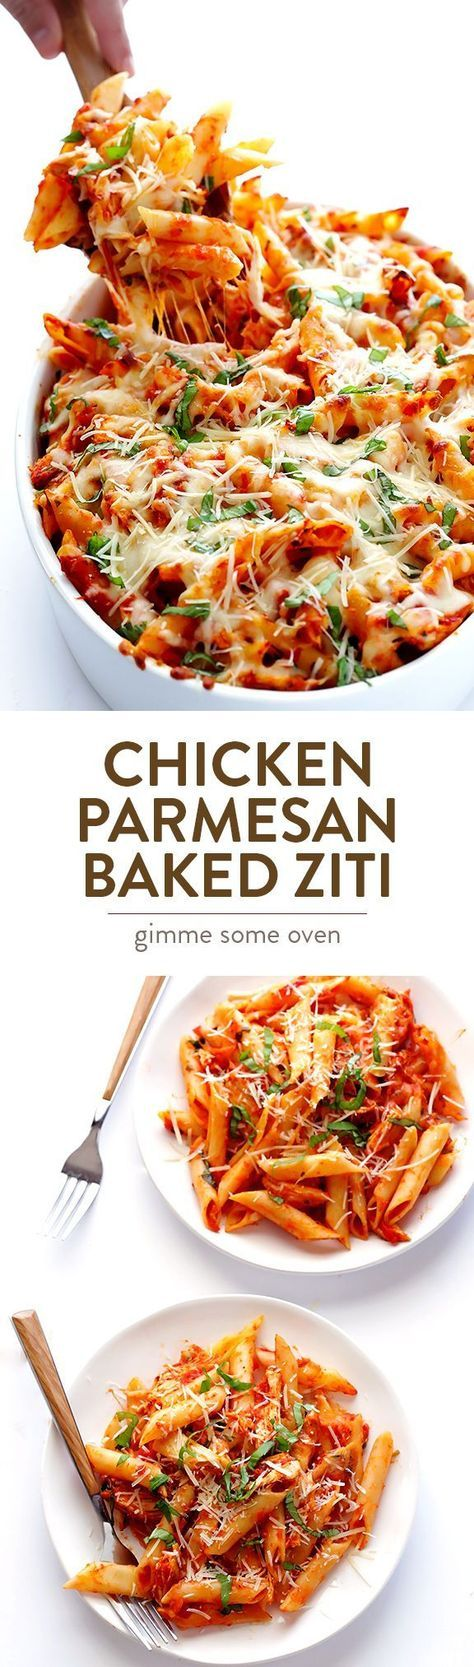 Chicken Parmesan Baked ZIti -- all you need are 6 easy ingredients to make this delicious, crowd-pleasing meal! | gimmesomeoven.com